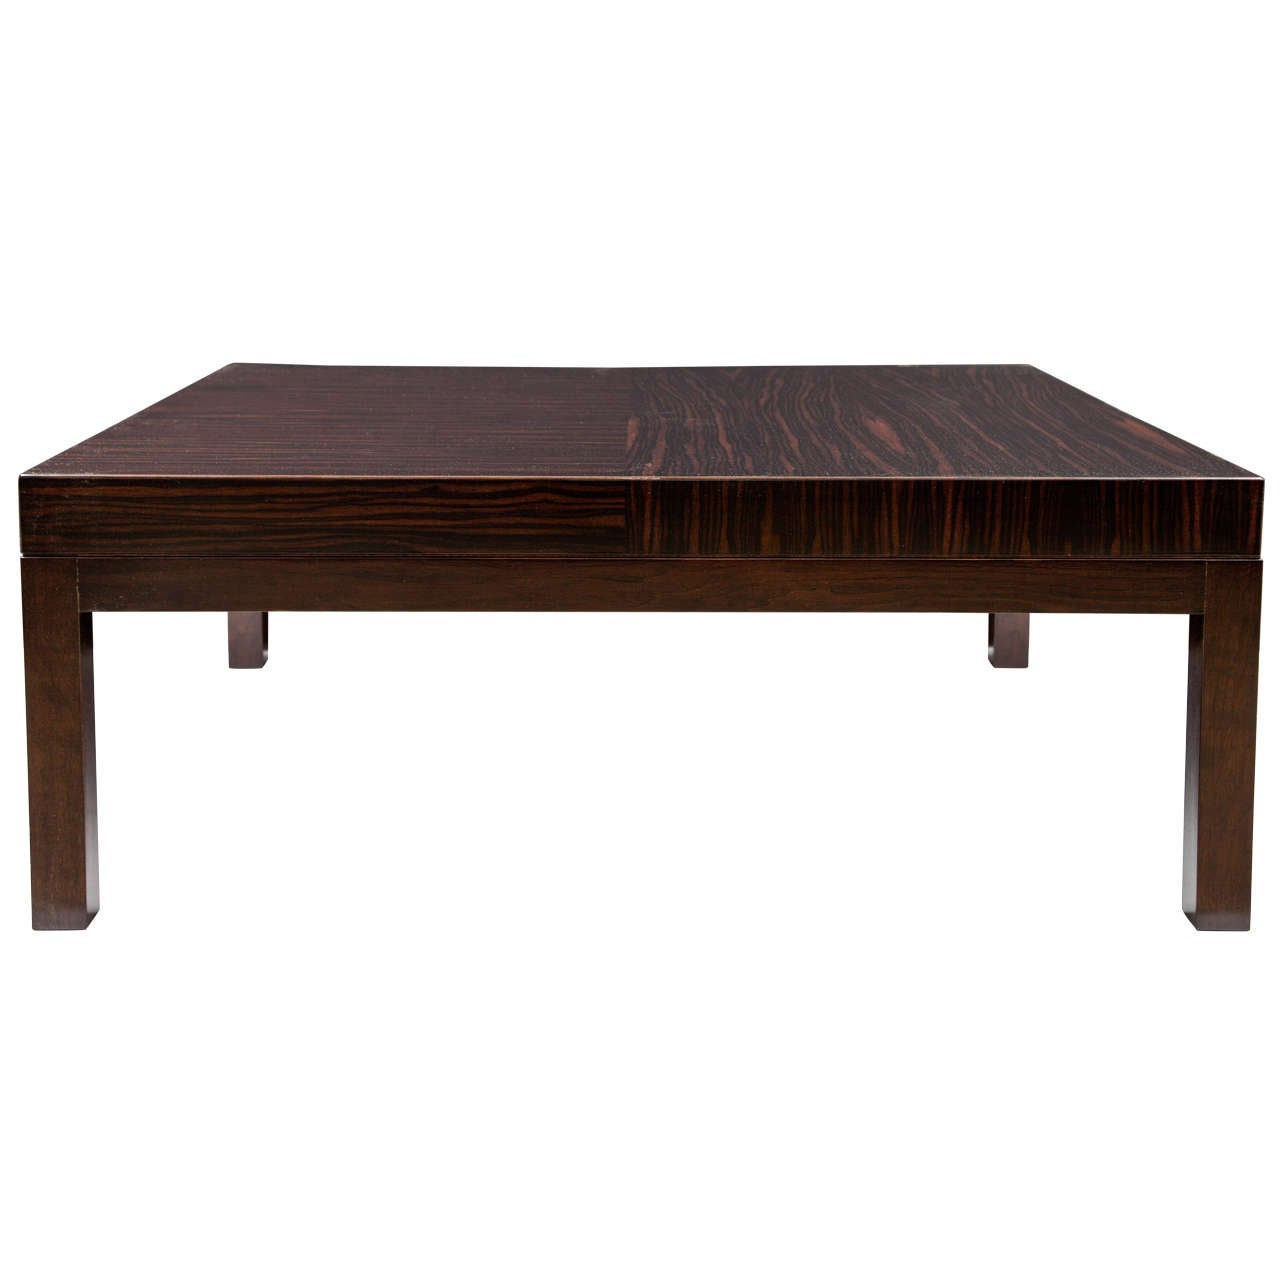 Boke Macassar Ebony Coffee Table By Christian Liaigre For Holly Hunt At 1stdibs